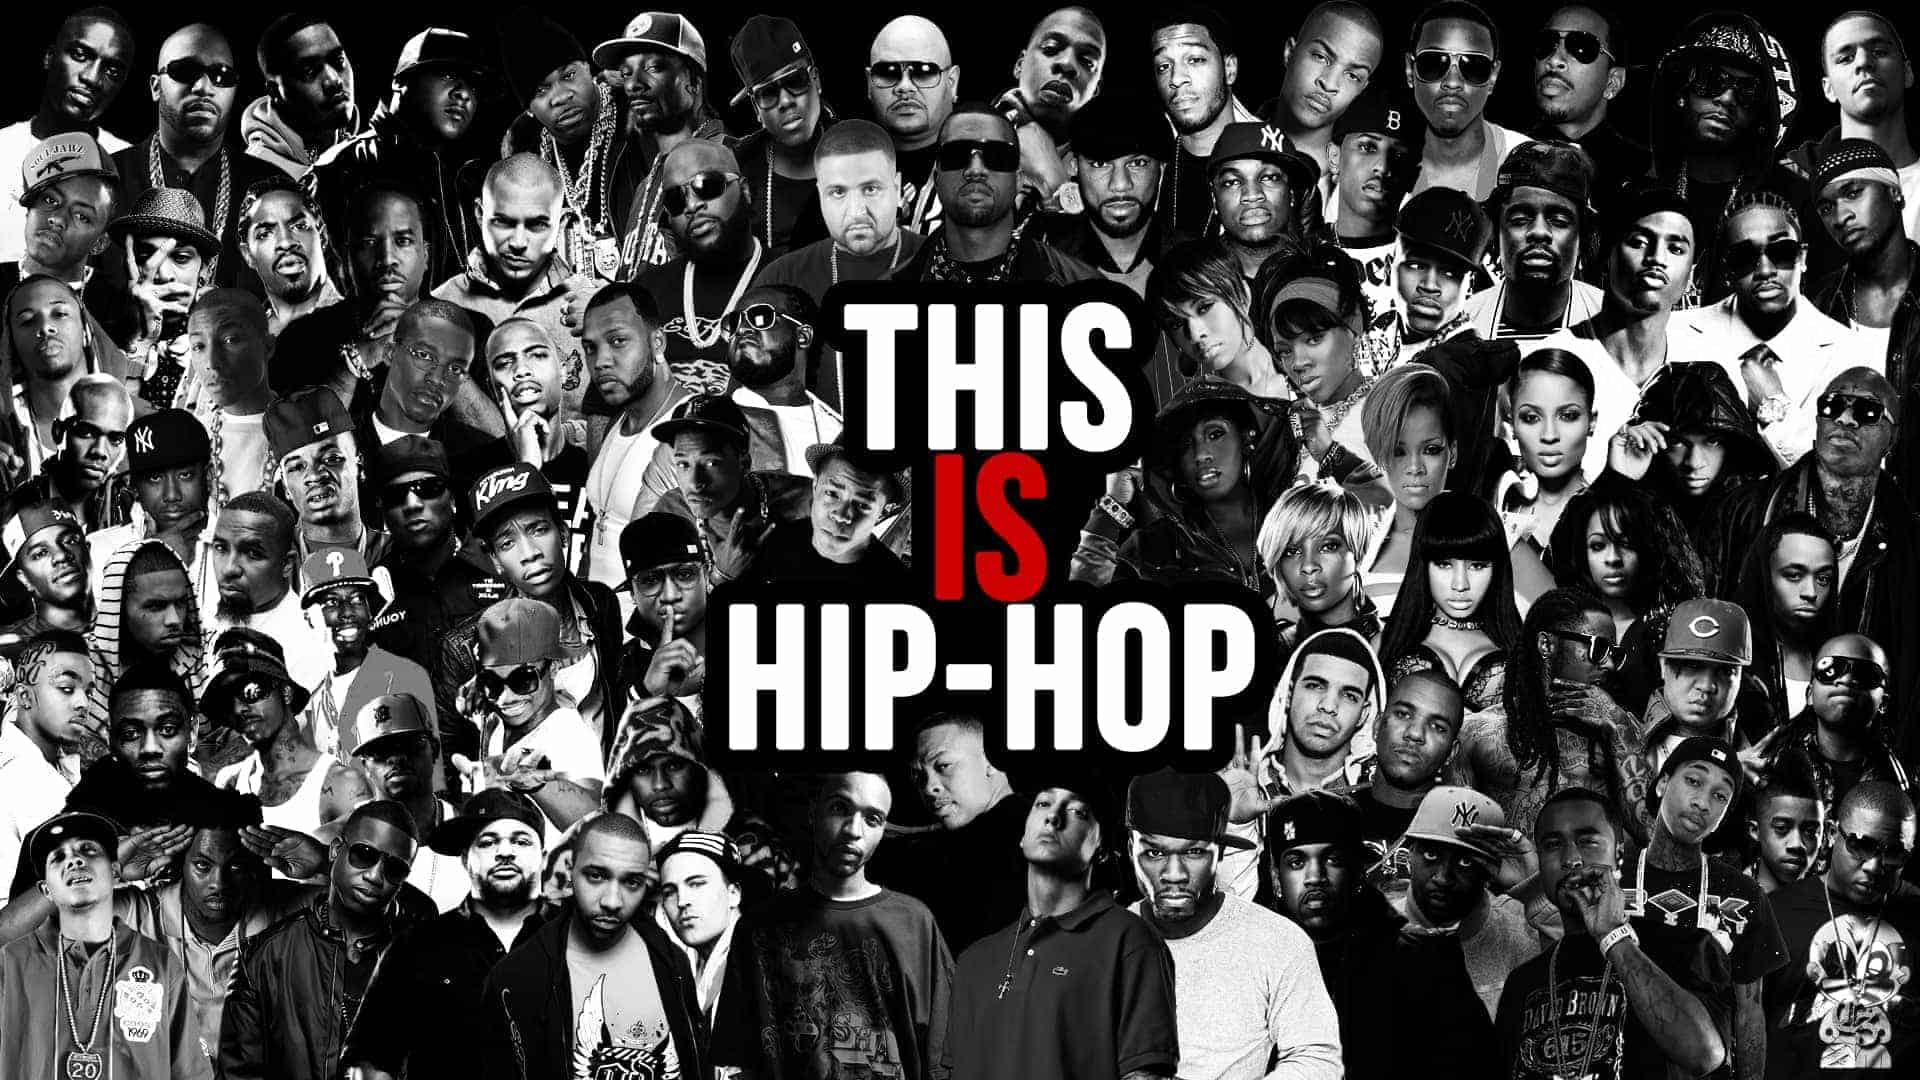 This is Hip Hop 1920x1080